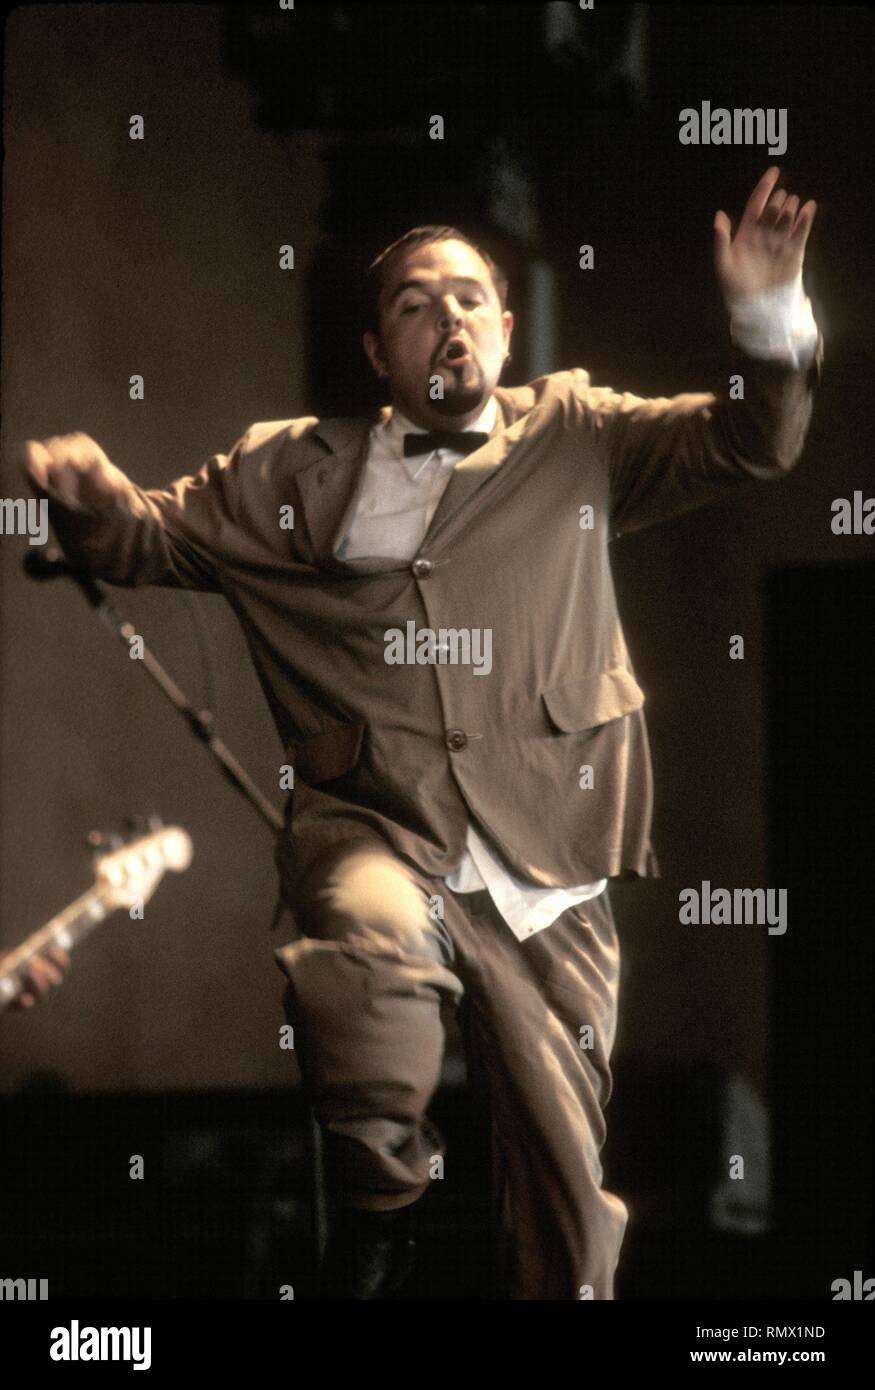 A band member of the Mighty Mighty Bosstones is shown performing on stage during a 'live' concert appearance.pic, pic, picture, pictures, photo, photos, photograph, photographs, online, digital, download - Stock Image